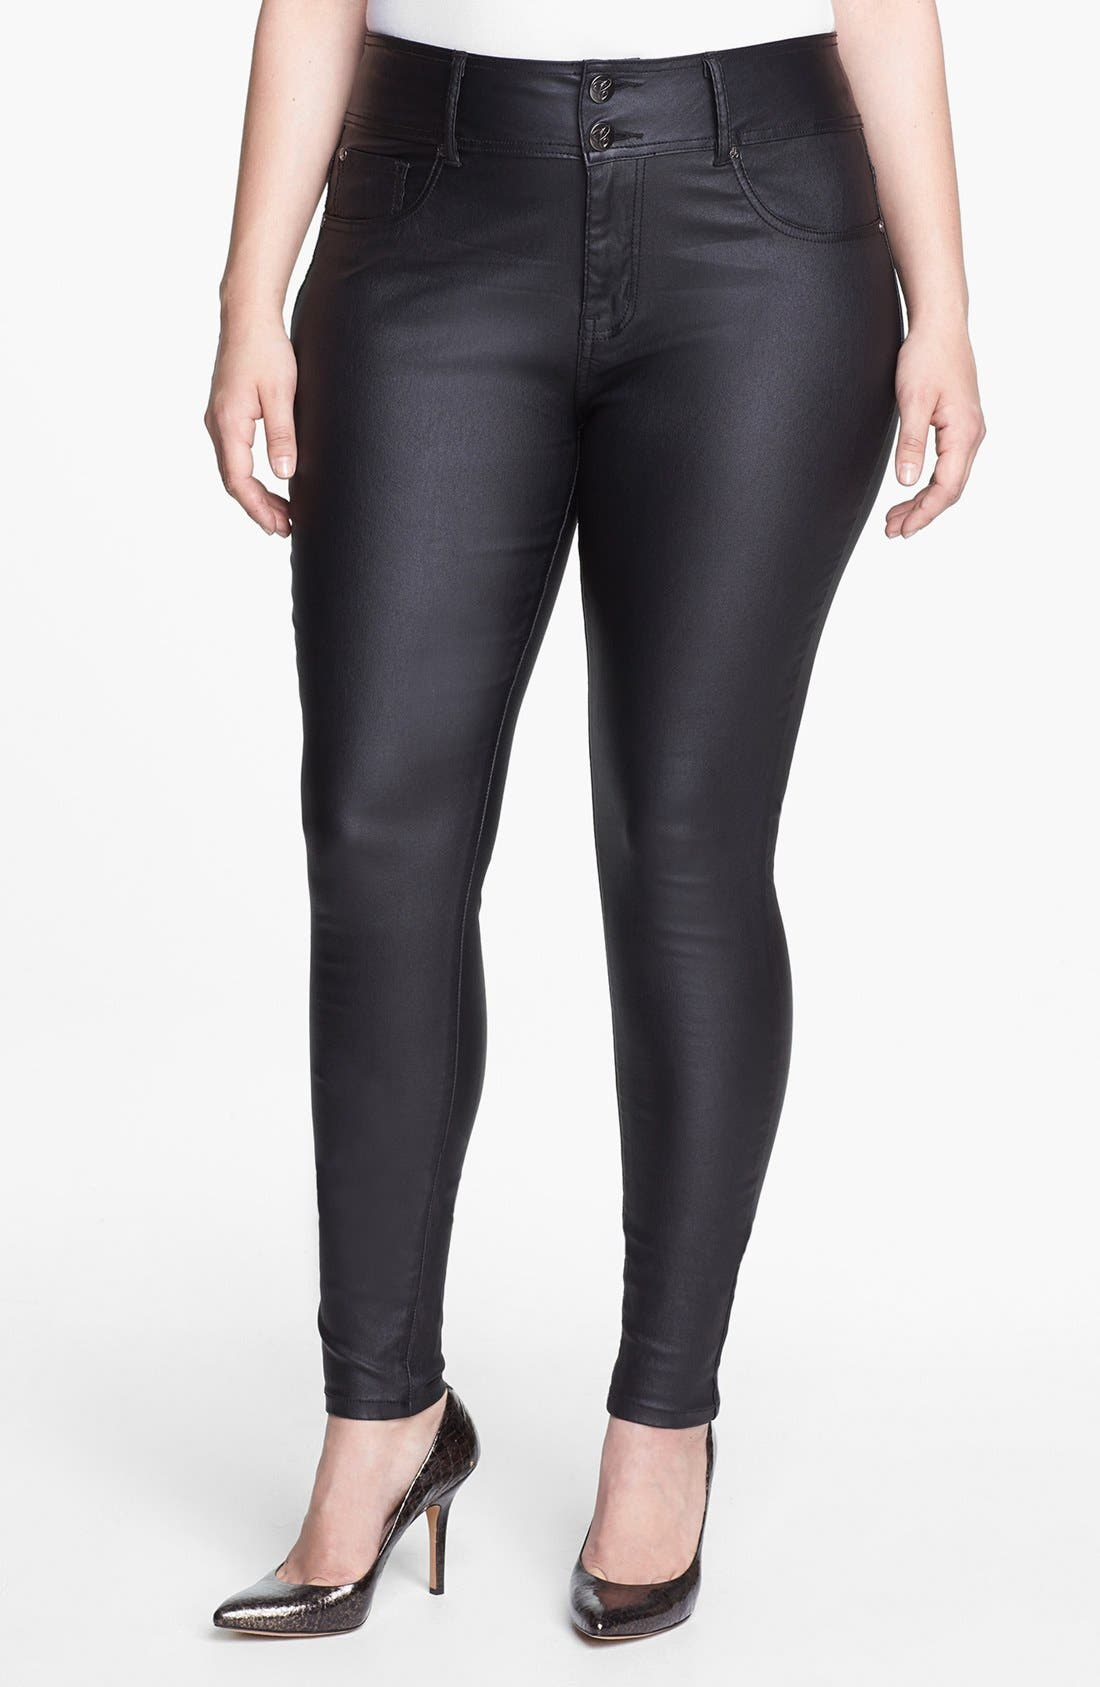 Alternate Image 1 Selected - City Chic Coated Stretch Jeans (Plus Size)